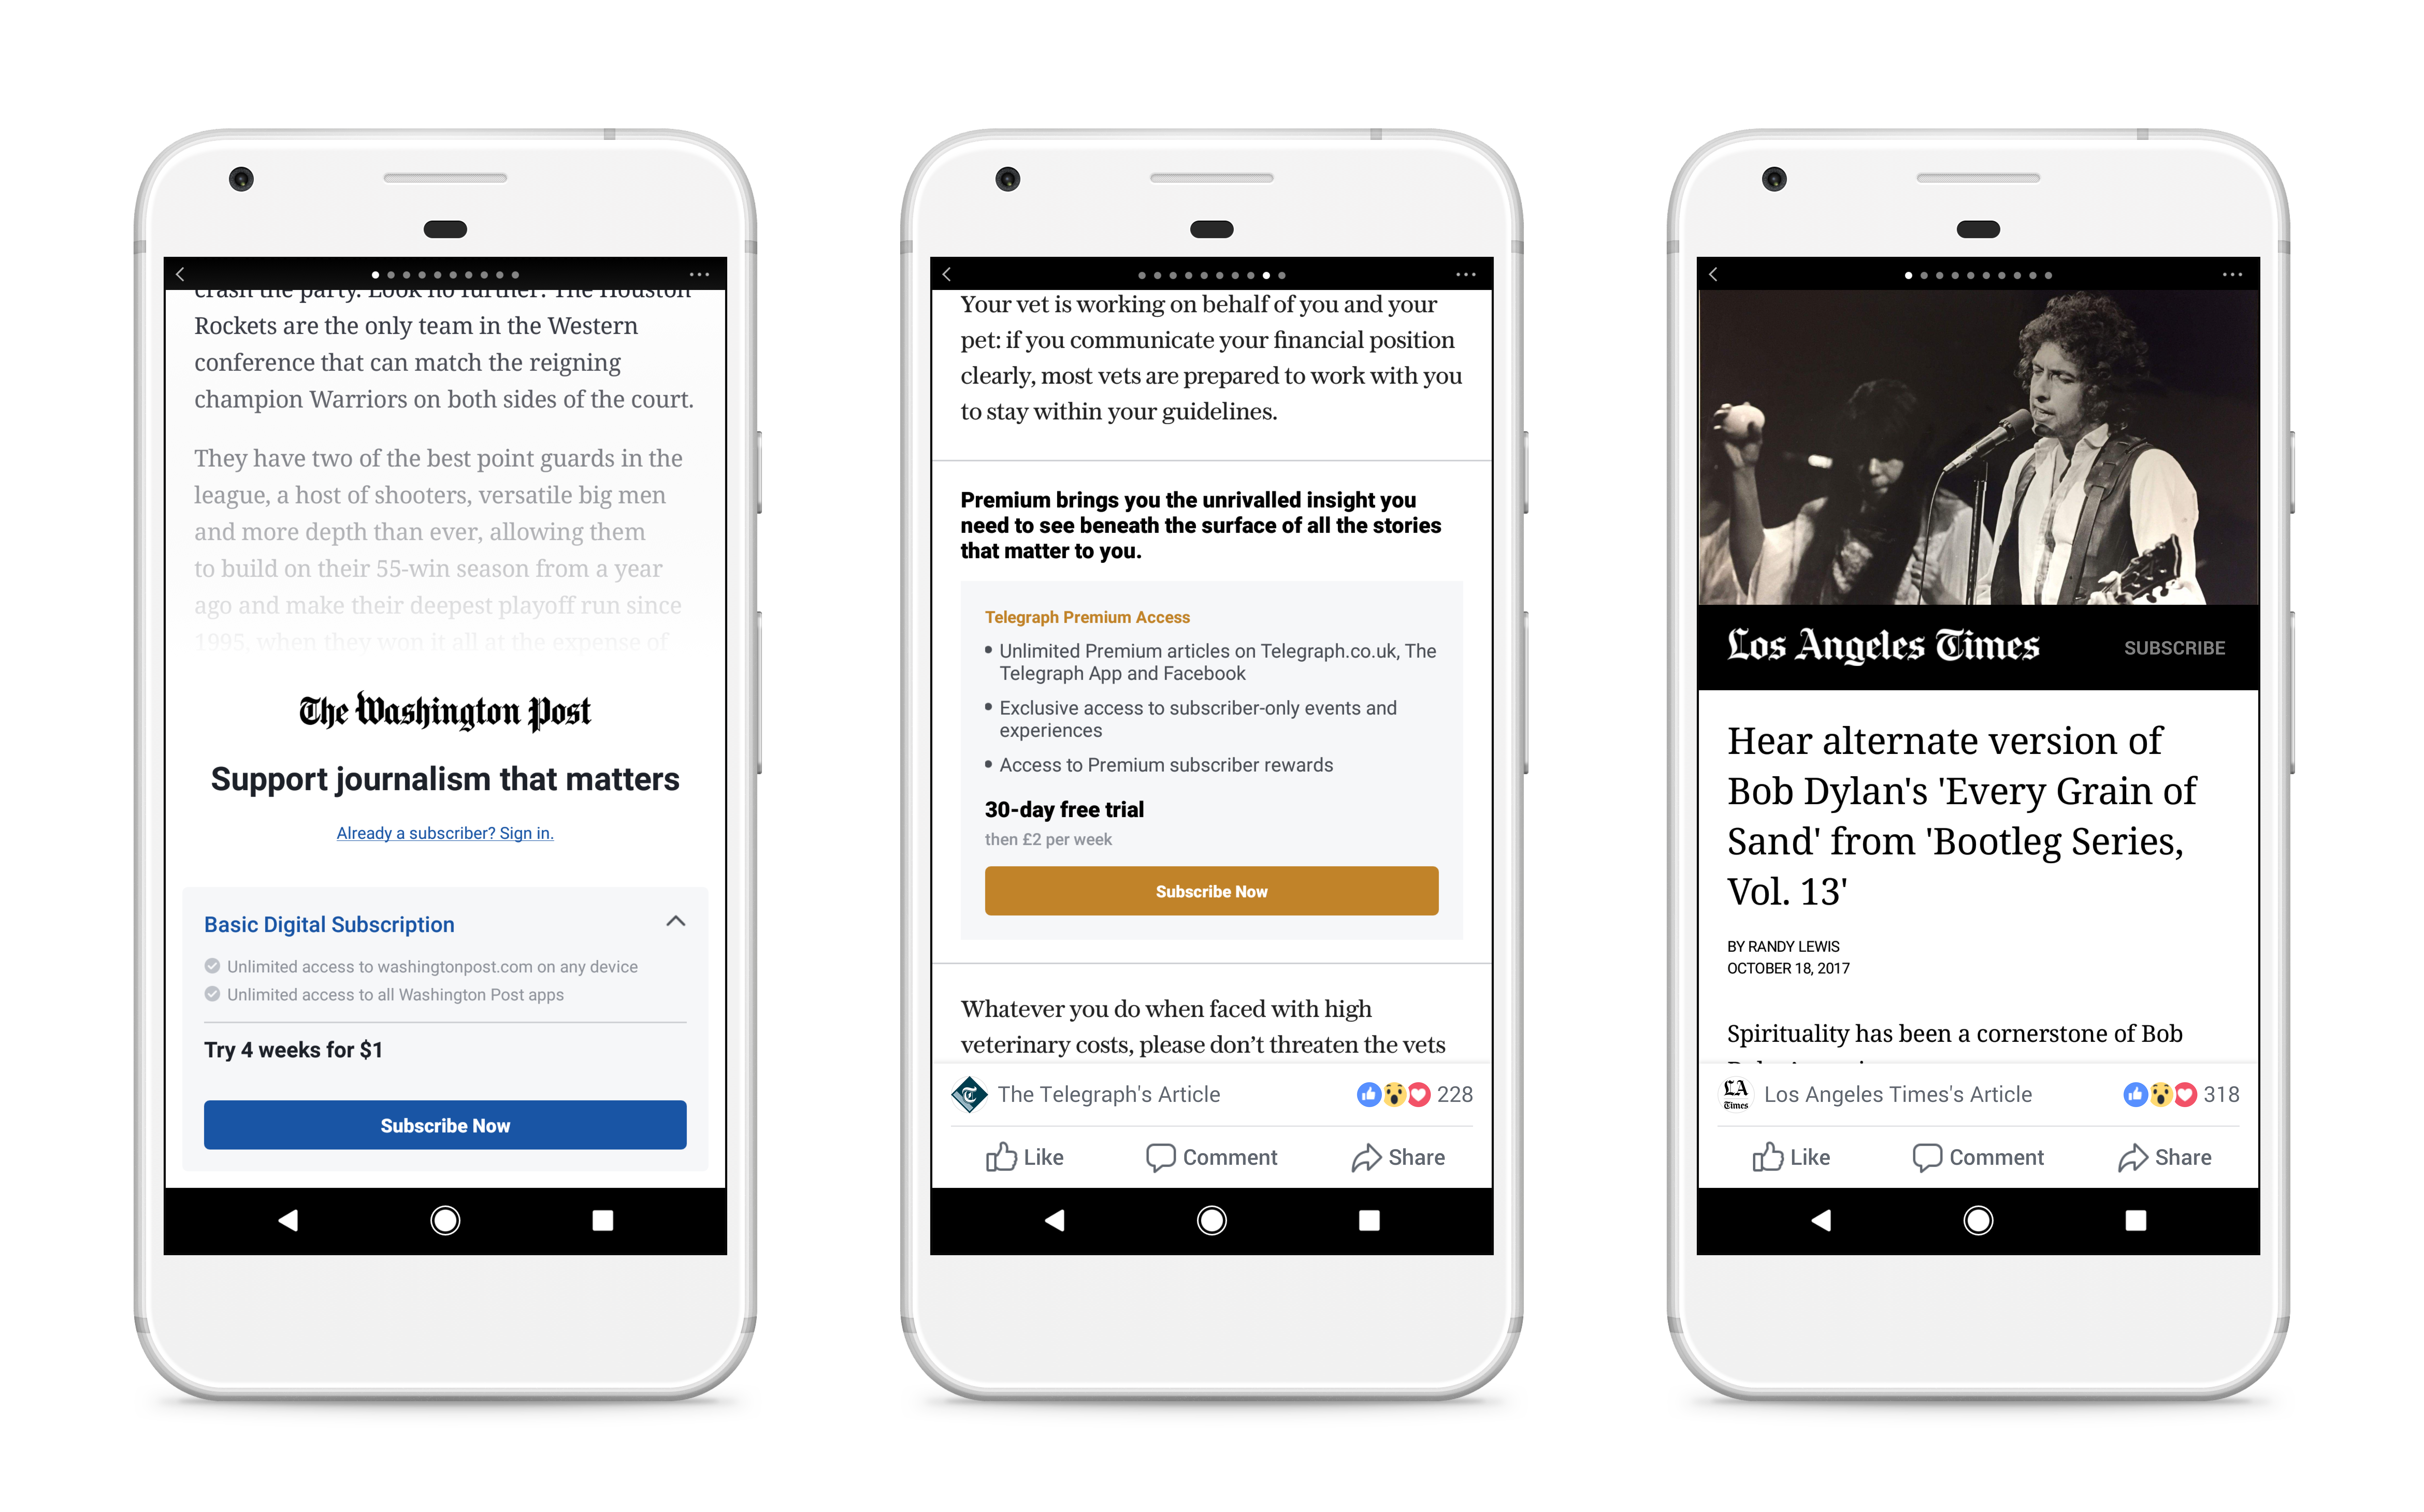 Facebook Tests News Subscription Tool on Android, Not Apple | Fortune